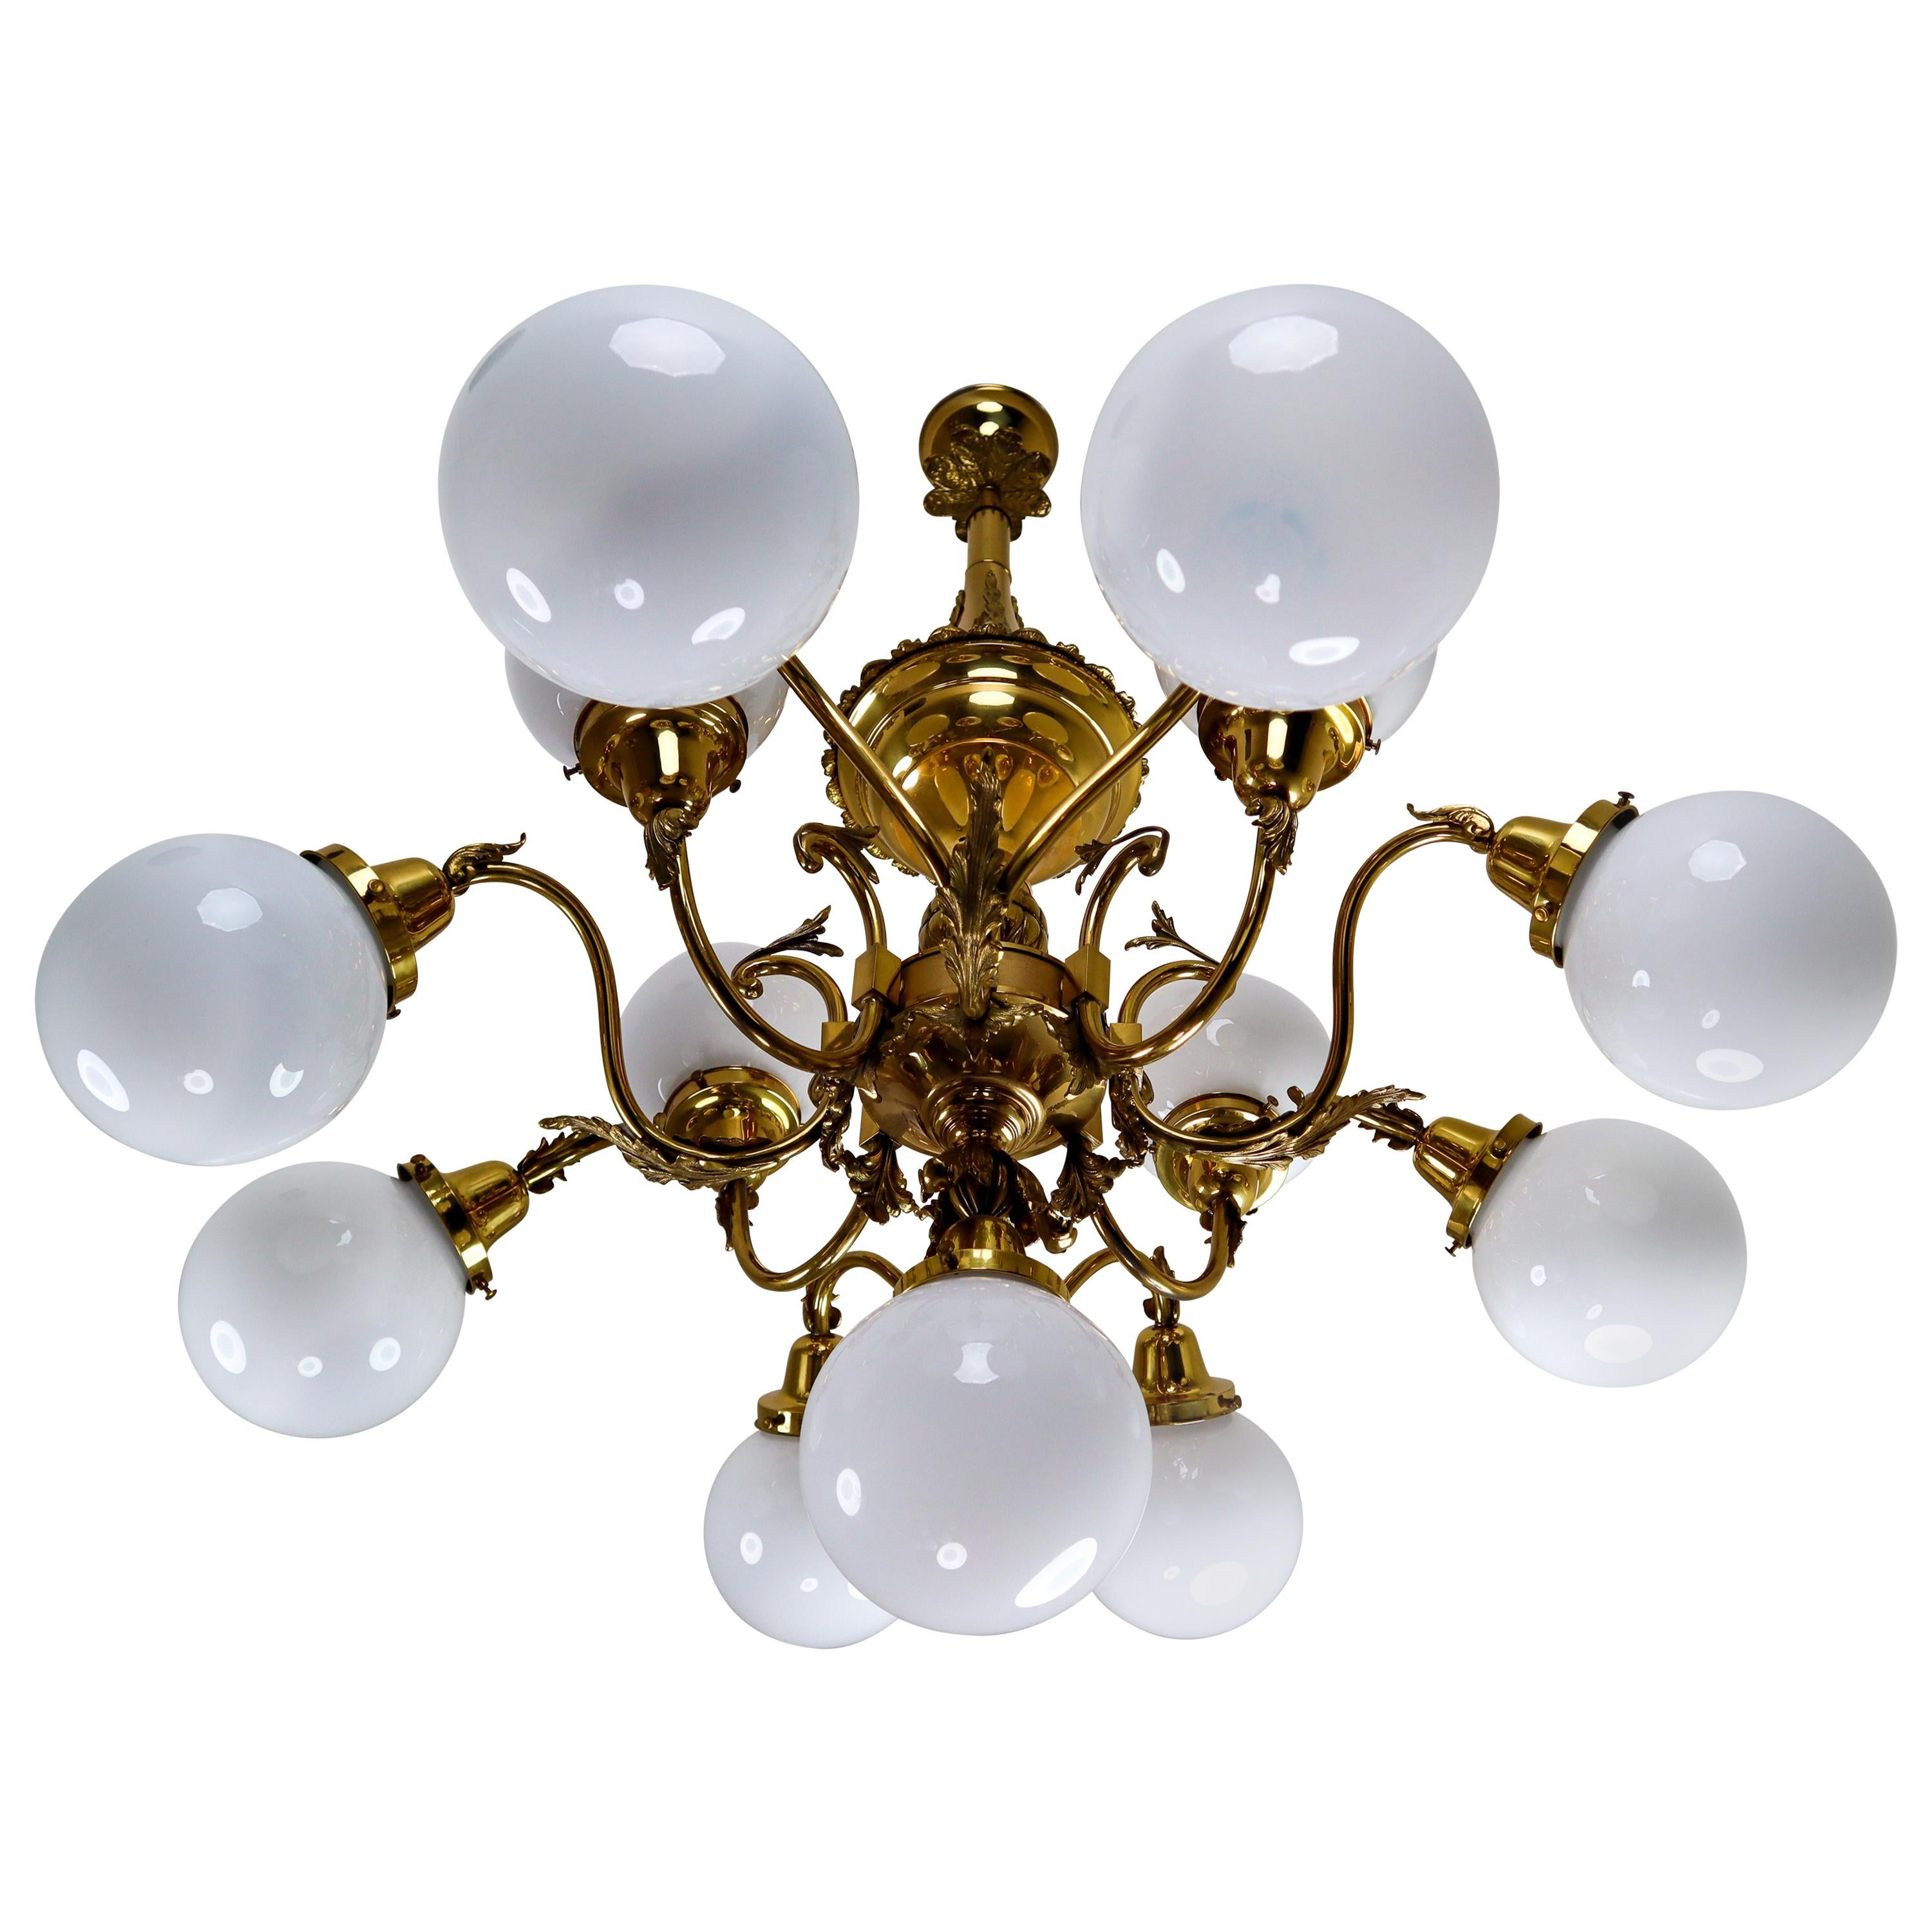 Monumental Brass Chandelier with Opaline Glass Globes, National Gallery Praque